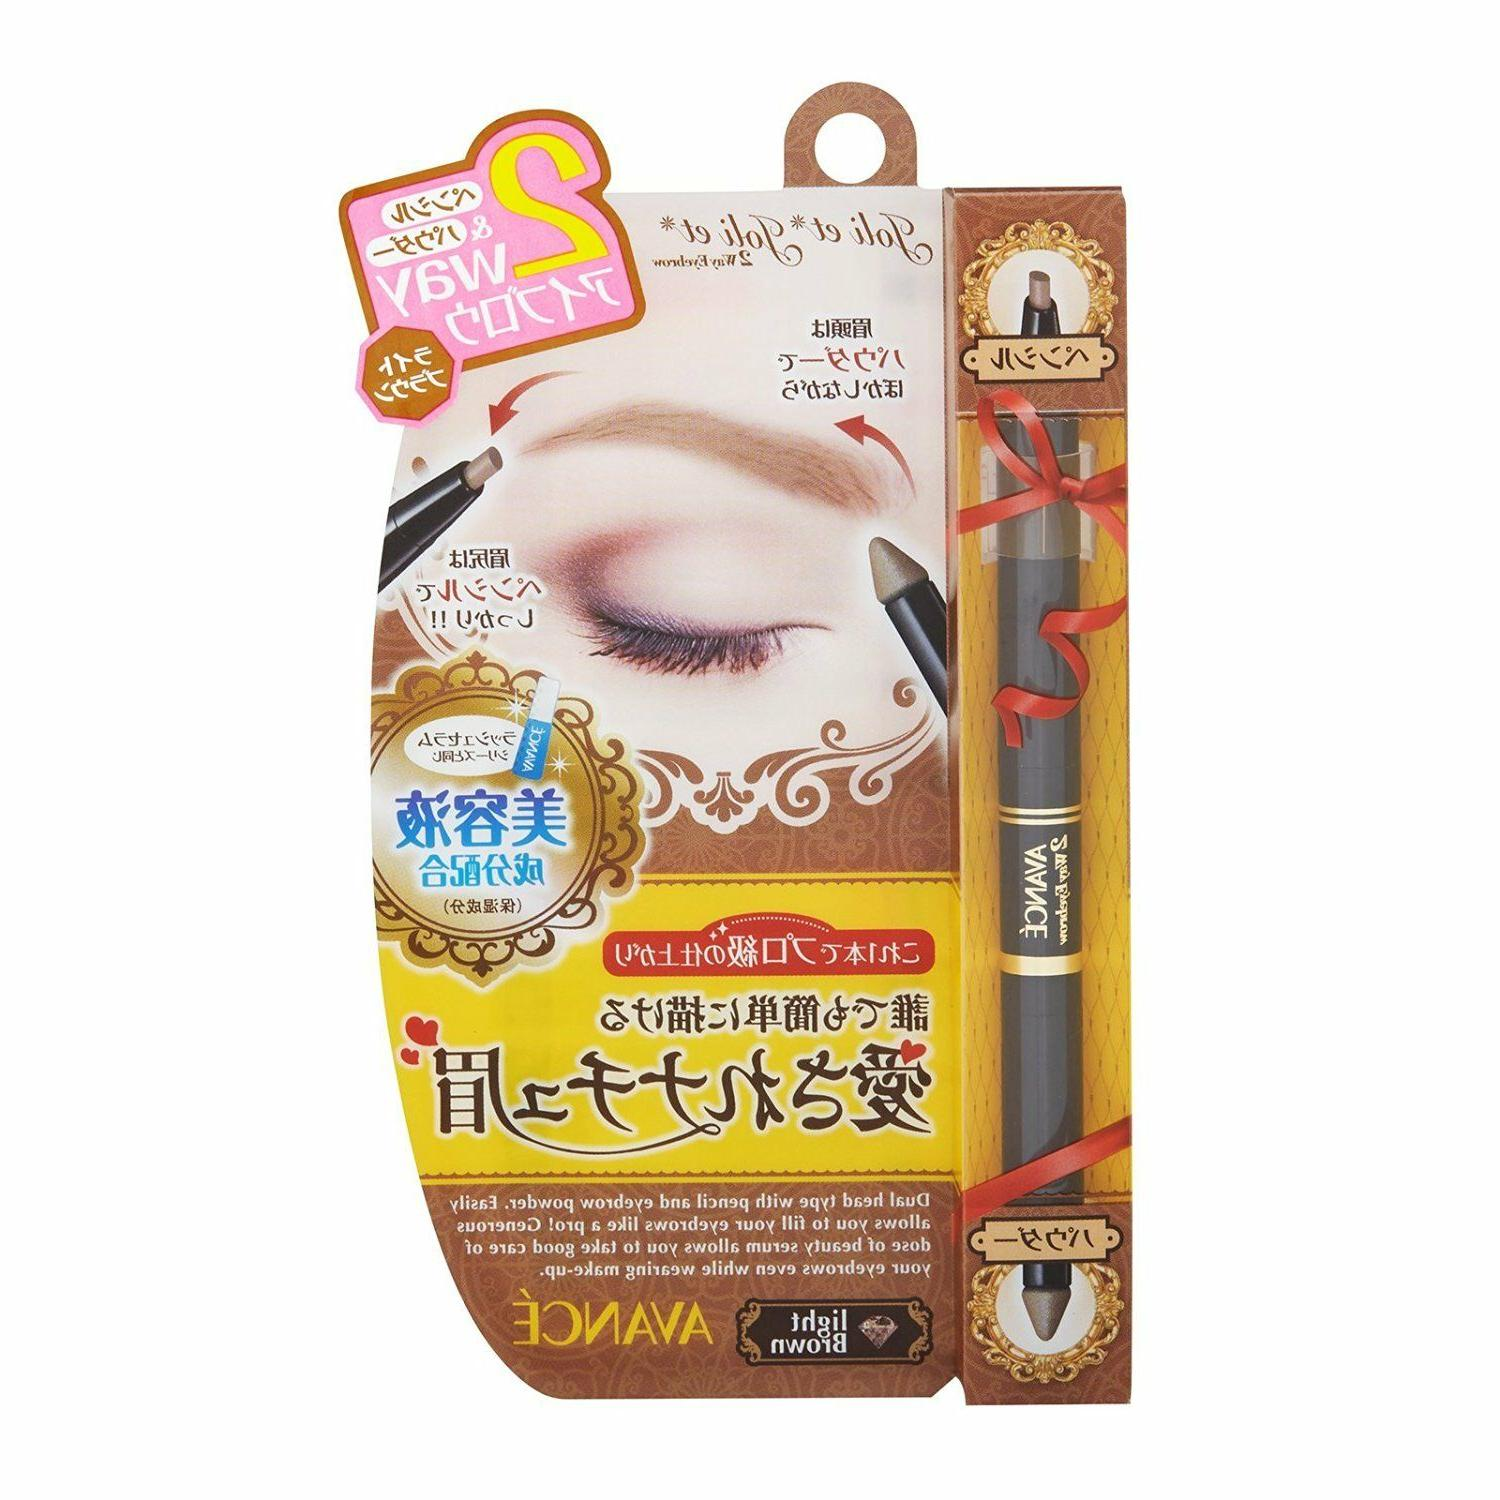 AVANCE Japan Joli et Joli et 2-way Pencil & Powder Eyebrow -